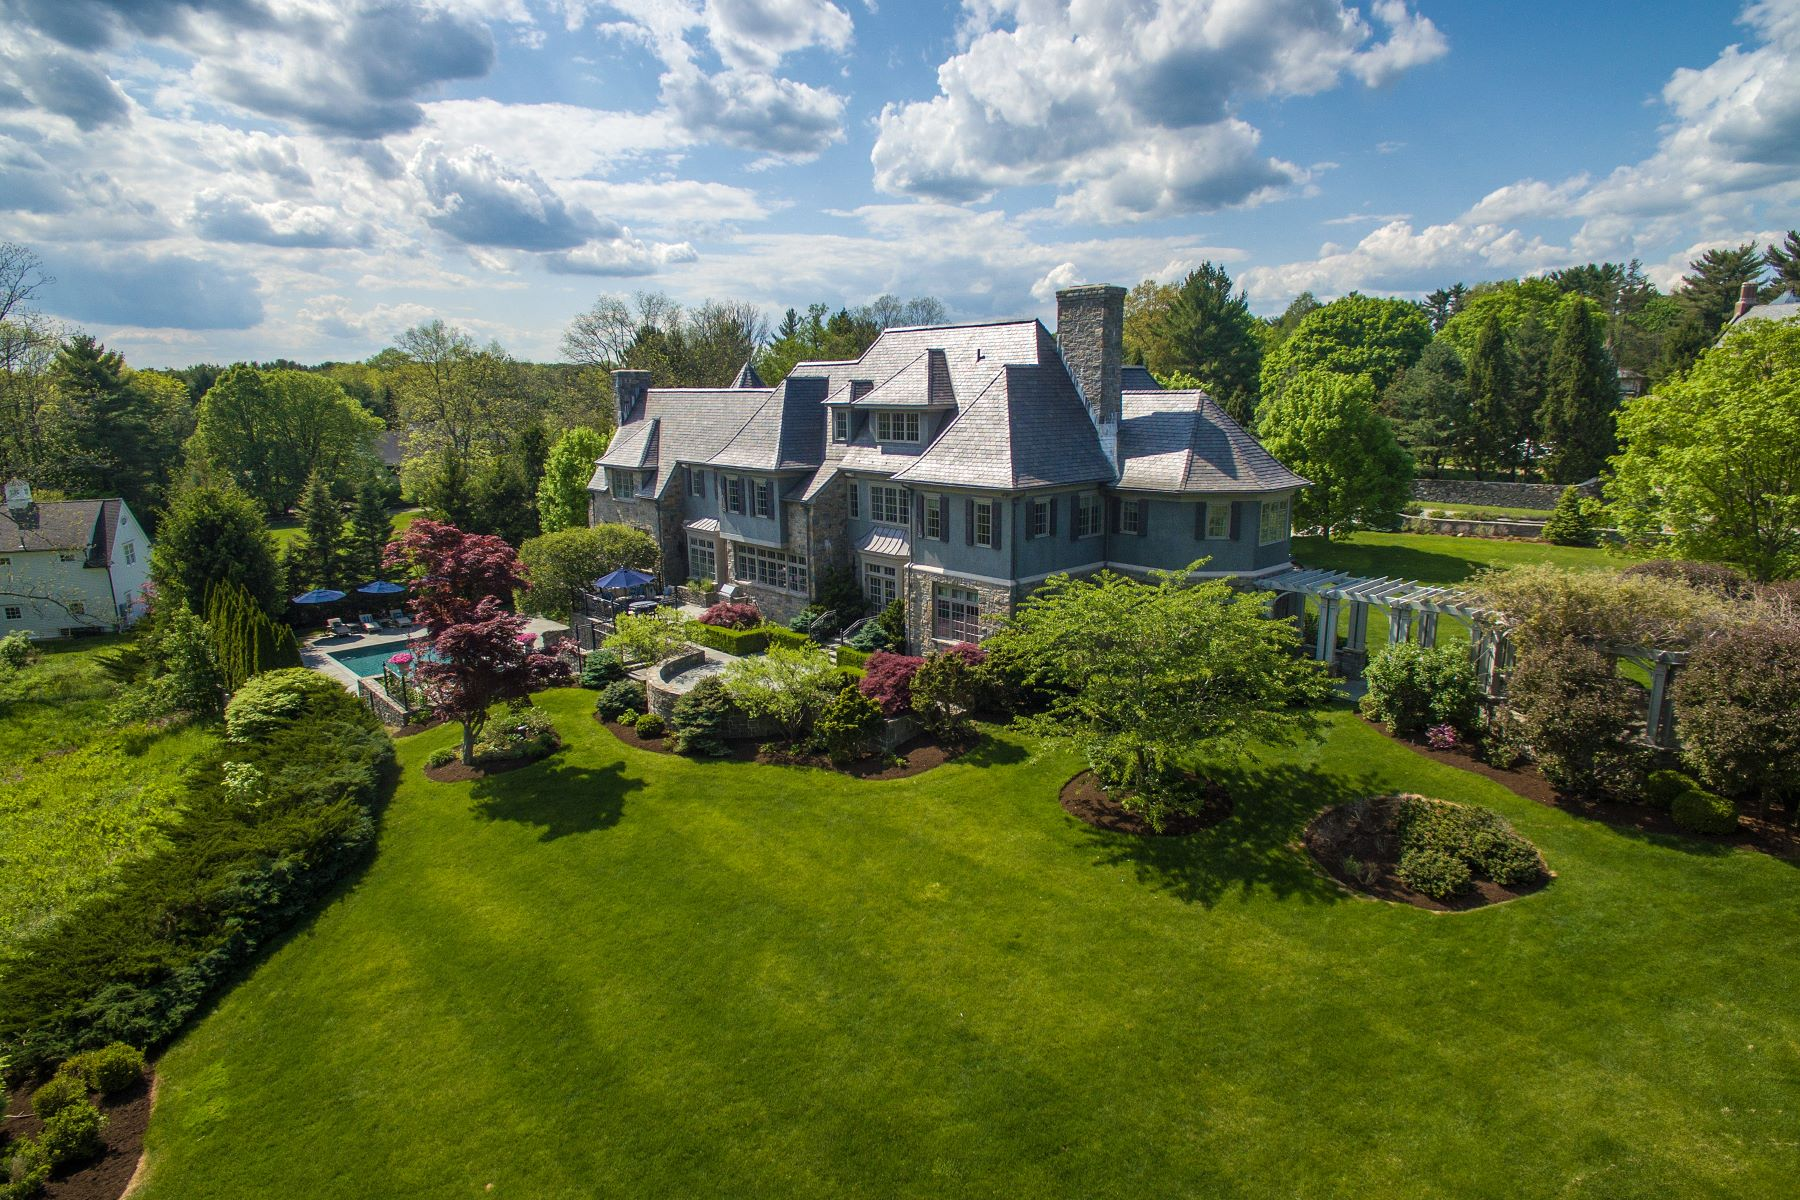 Casa Unifamiliar por un Venta en 36 Hemlock Hill Road New Canaan, Connecticut, 06840 Estados Unidos